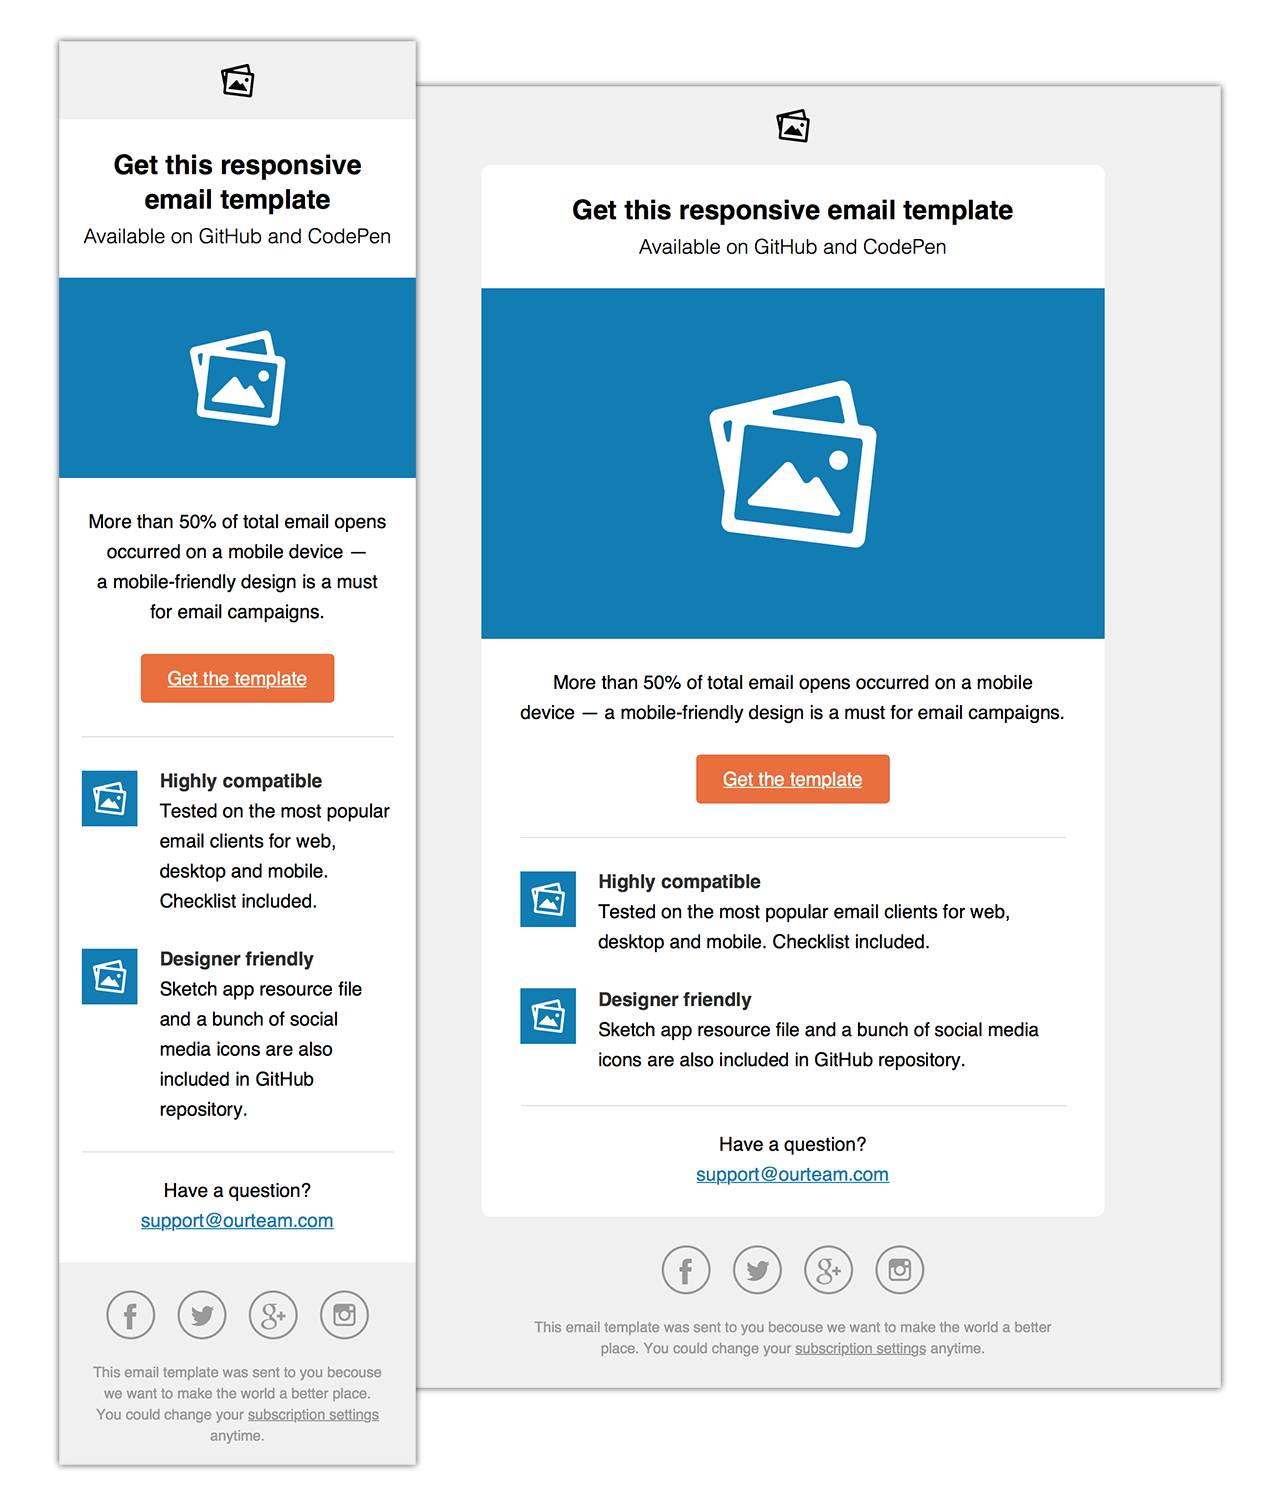 Responsive HTML Email Template With Sketch App Resource Compatible - Outlook html email template